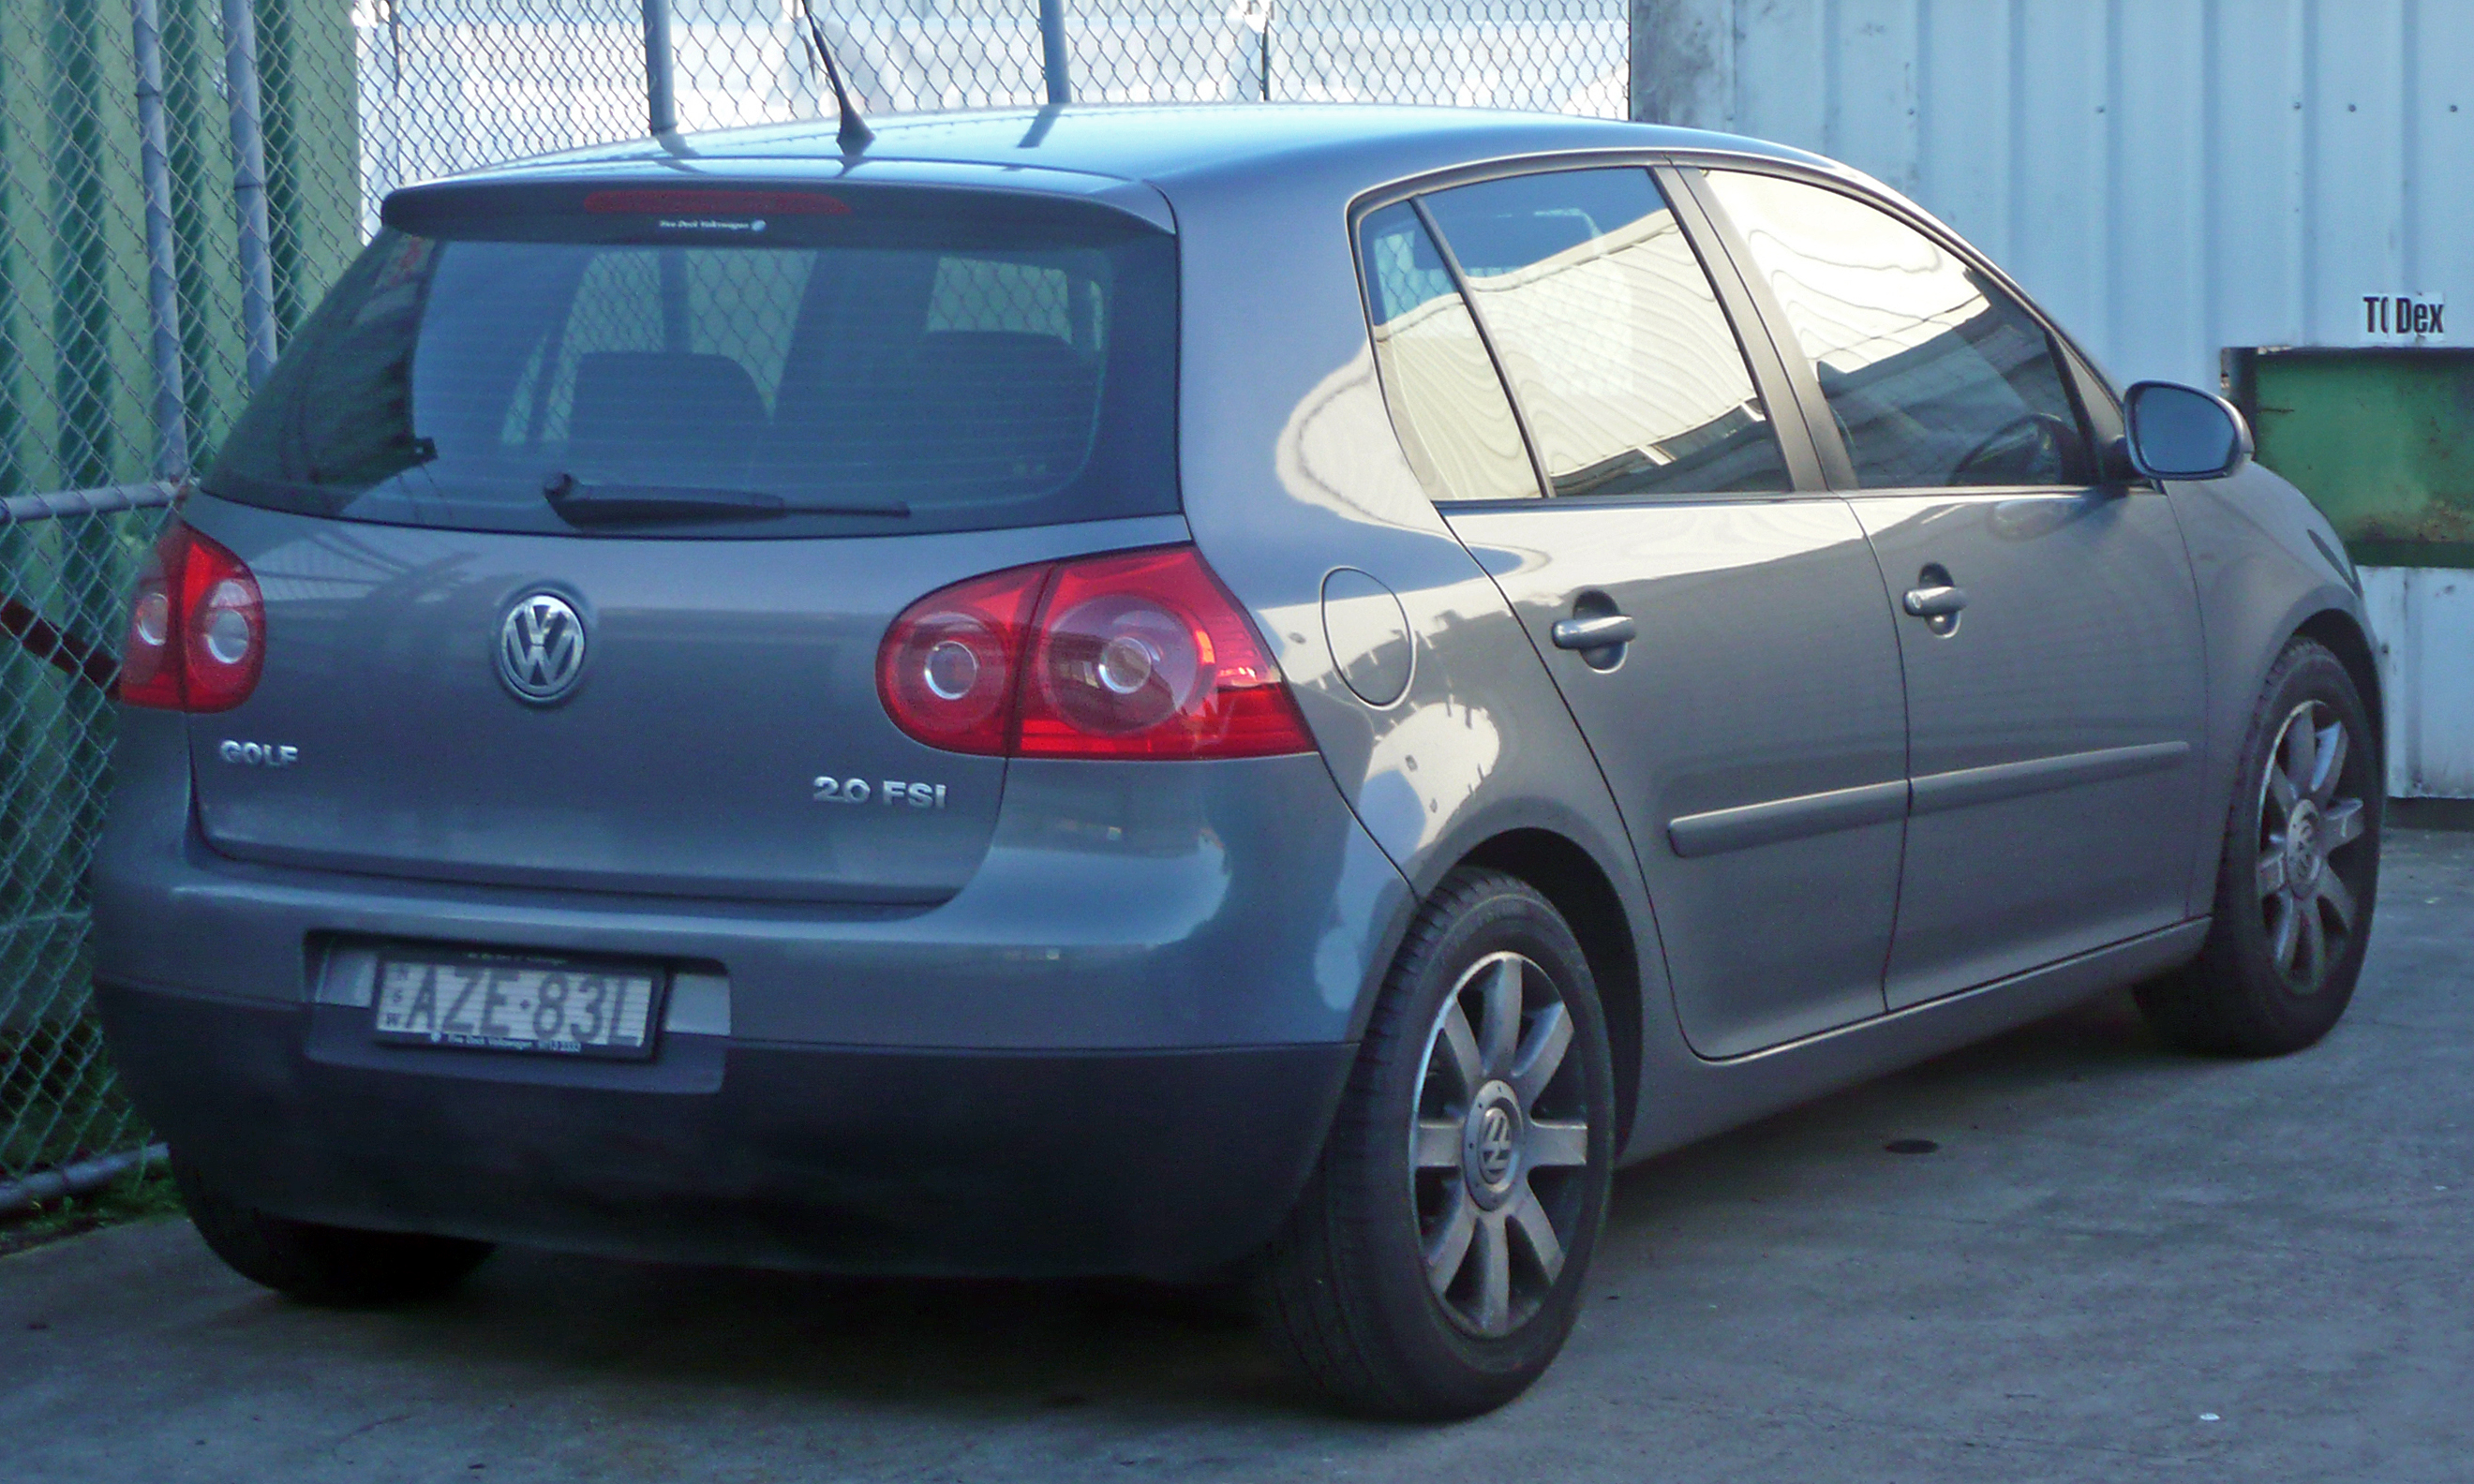 volkswagen golf 5 2 0 fsi sportline photos and comments. Black Bedroom Furniture Sets. Home Design Ideas